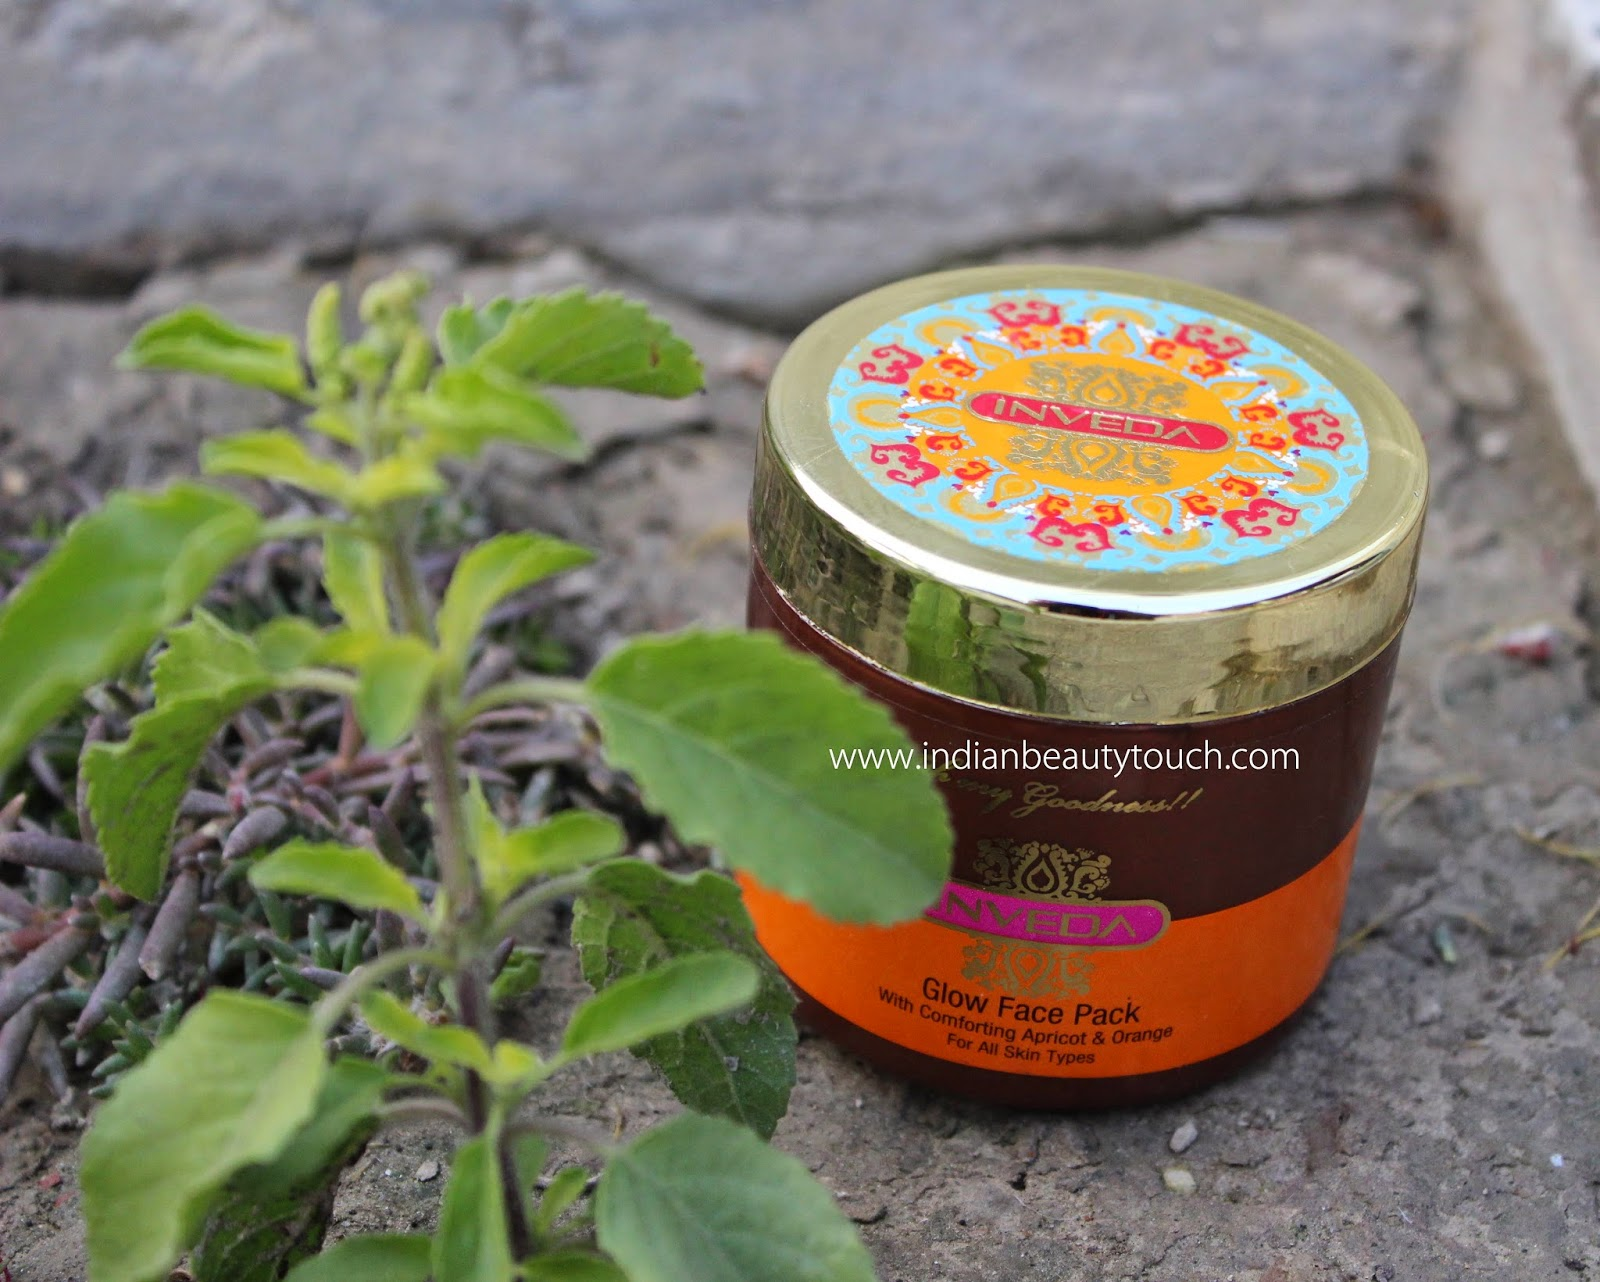 Inveda Glow Face Pack Review